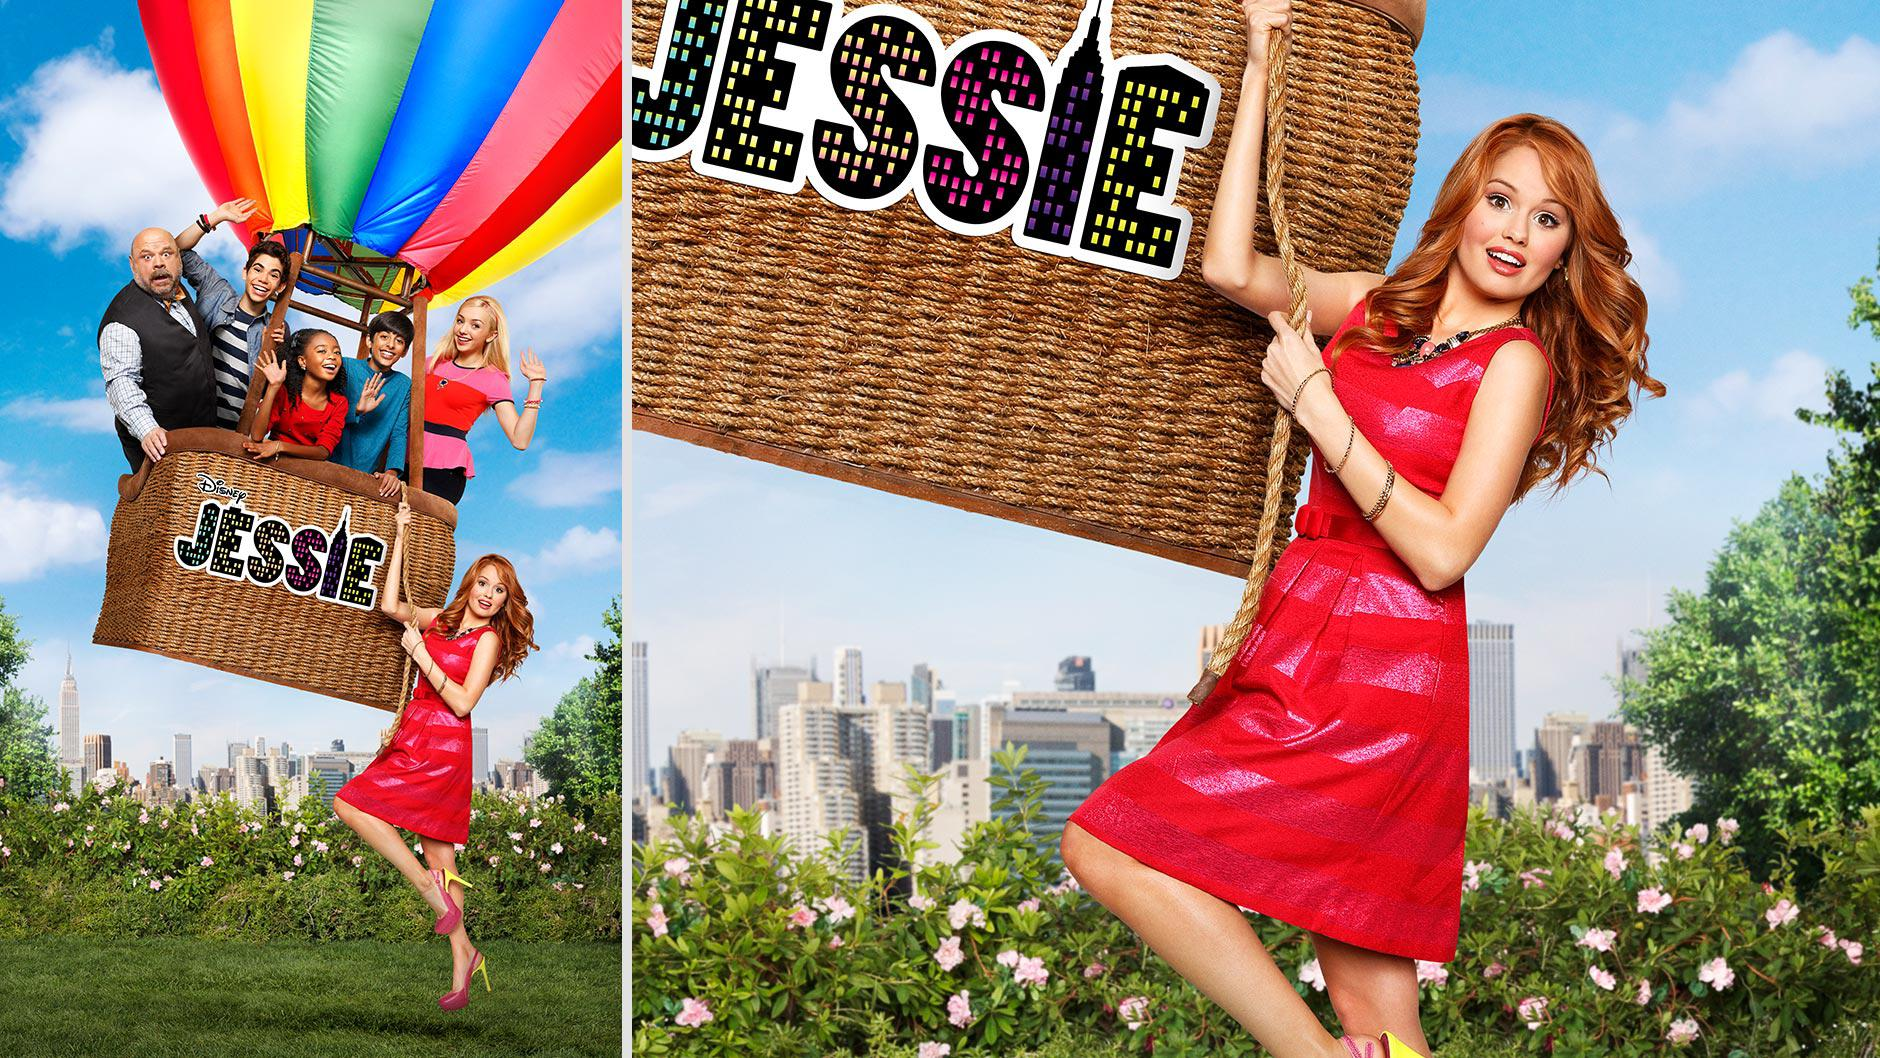 49 Jessie Wallpaper Disney Channel On Wallpapersafari